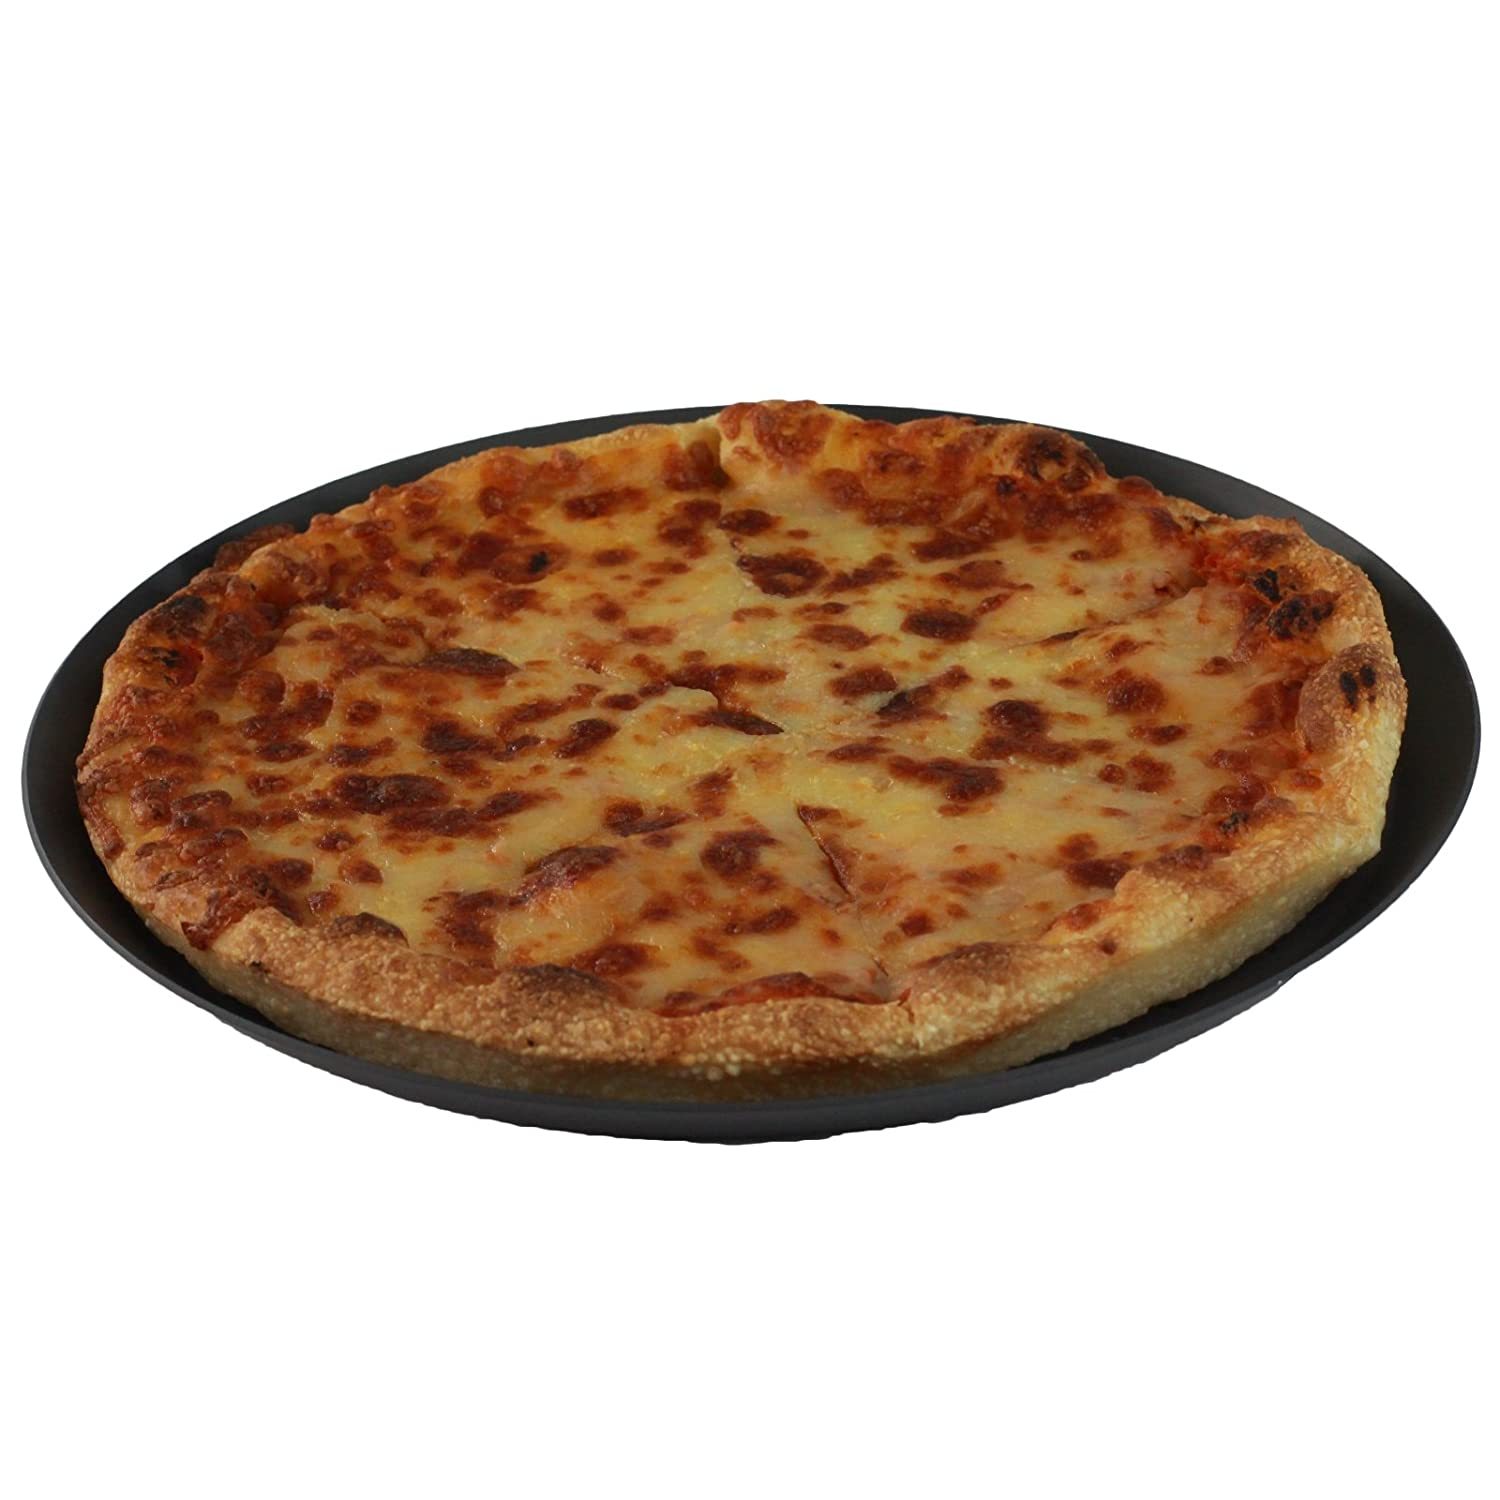 High Quality Professional Pizza Baking Tray - Medium 9 Inch Perfect Cook Non-Stick Pizza Pan GOLDBEARUK